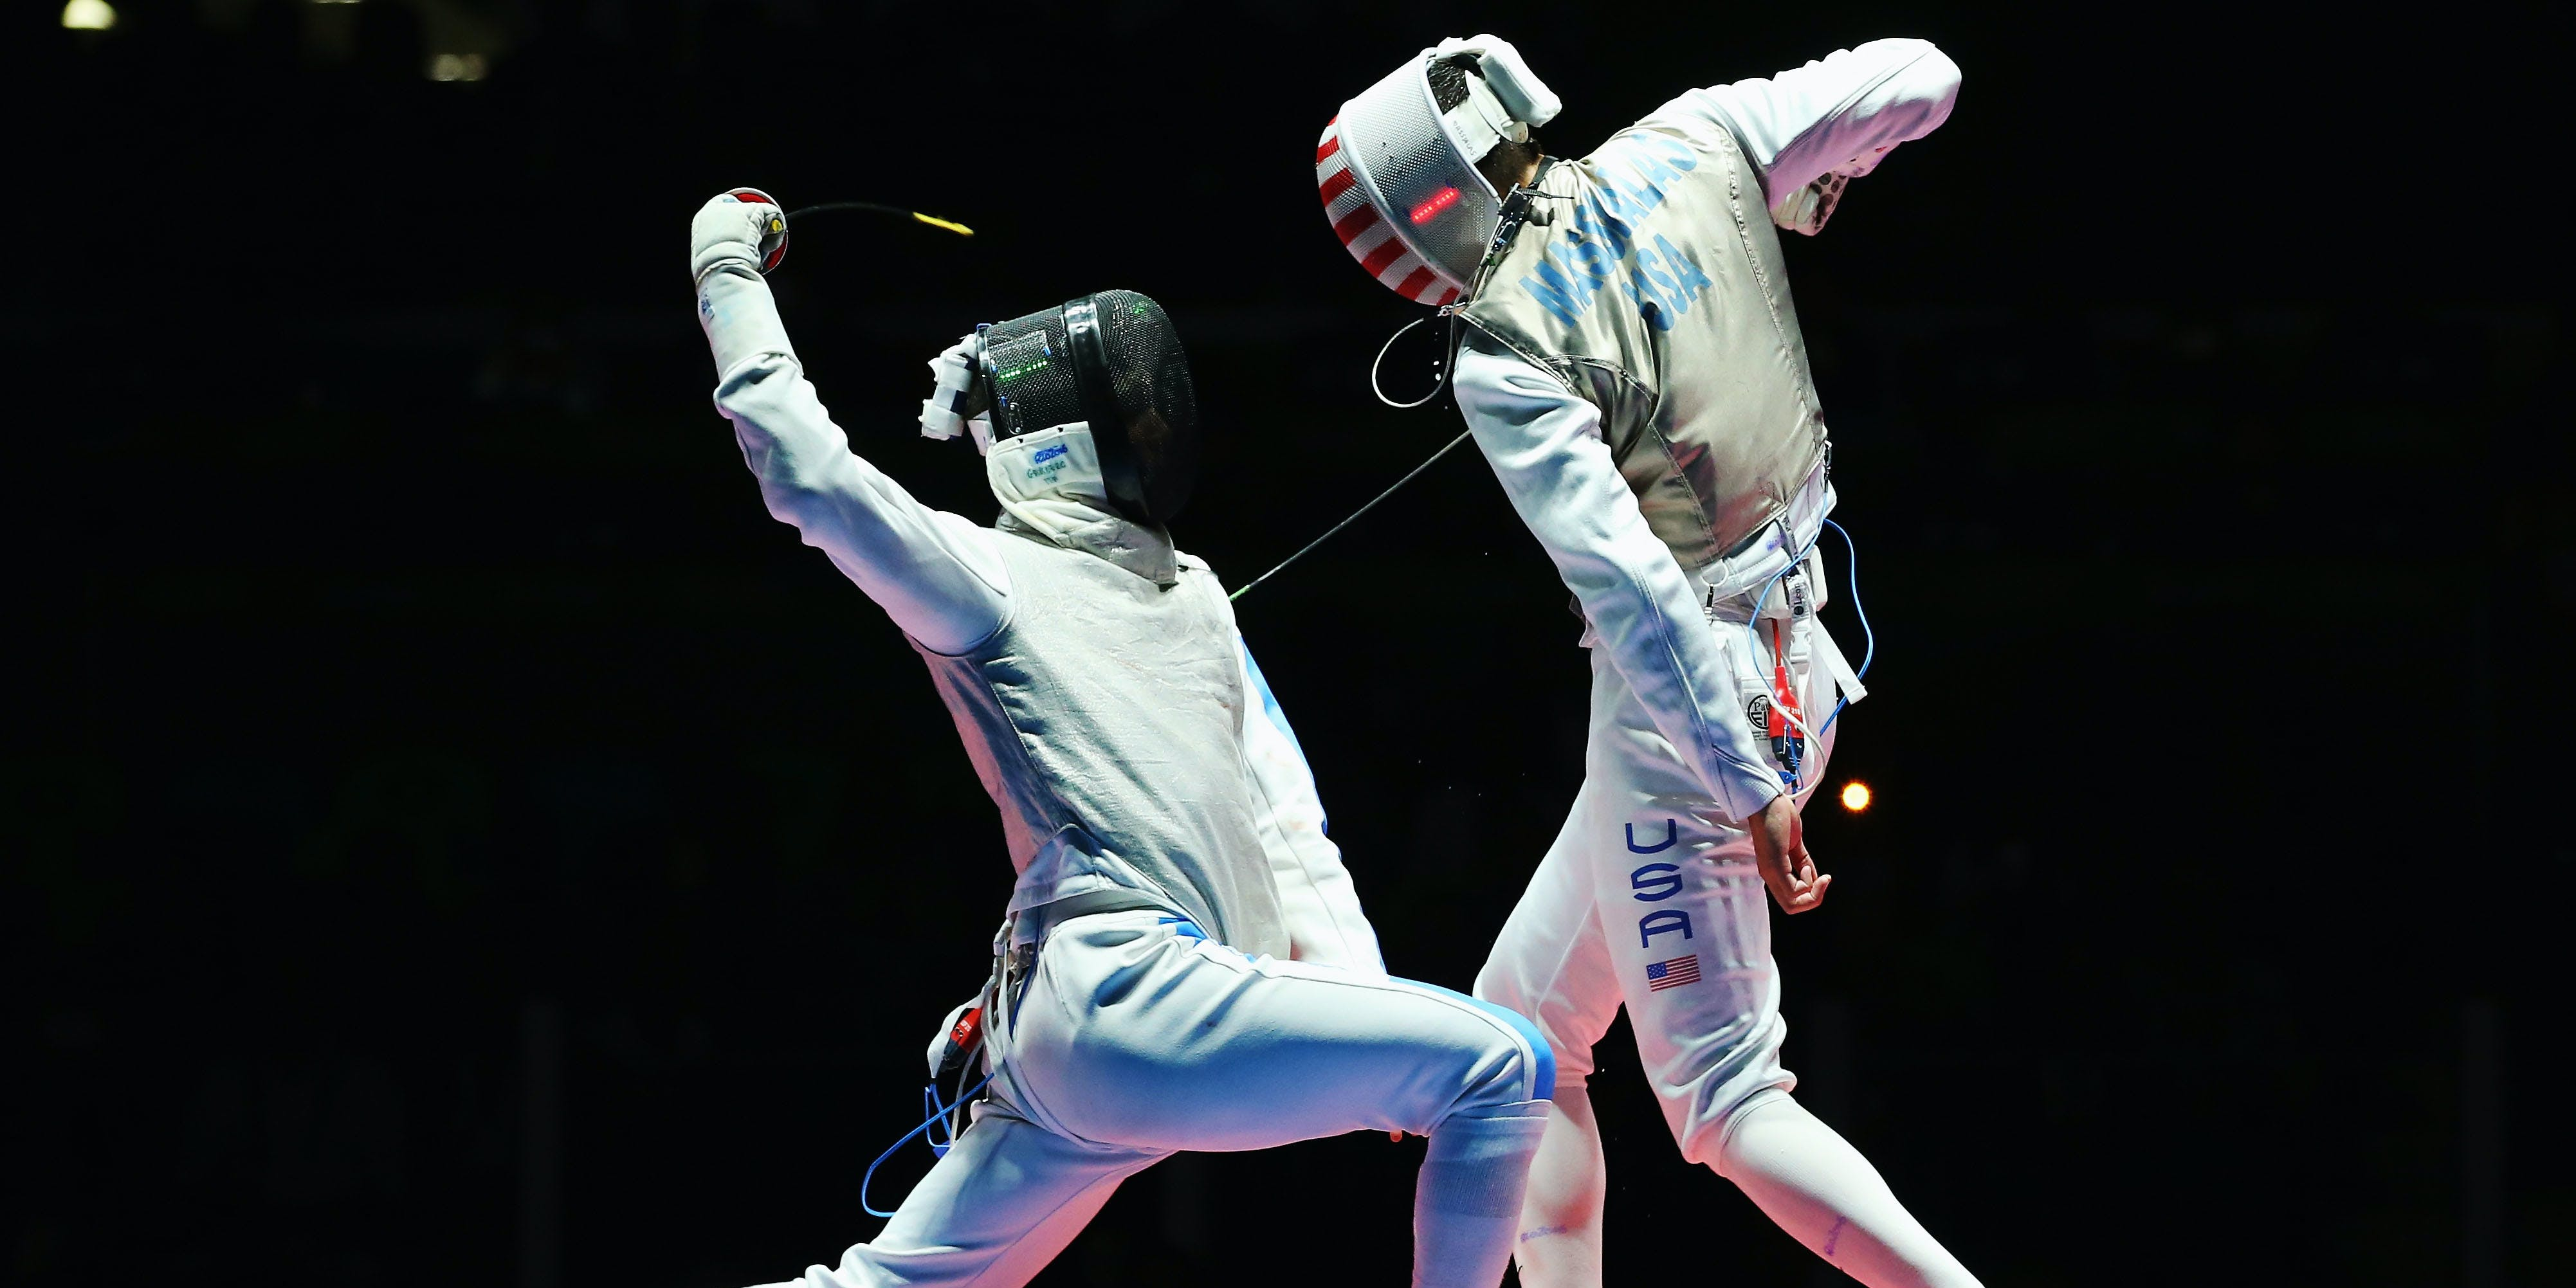 You're Watching Olympic Fencing Wrong